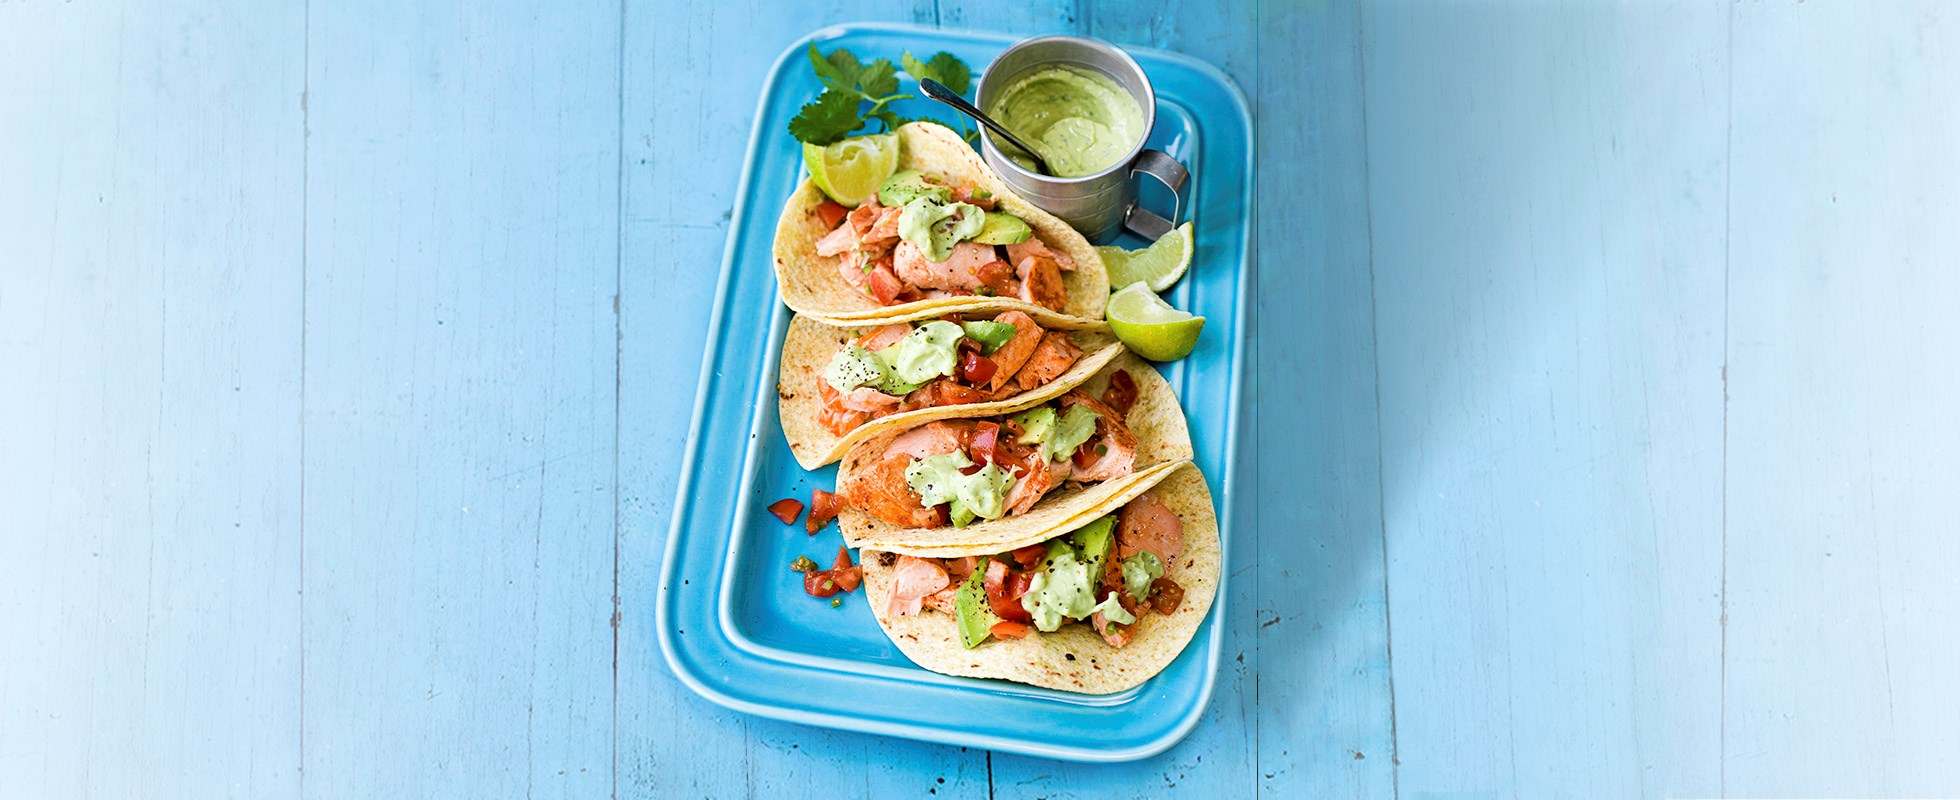 Lime grilled salmon tacos with avocado cream